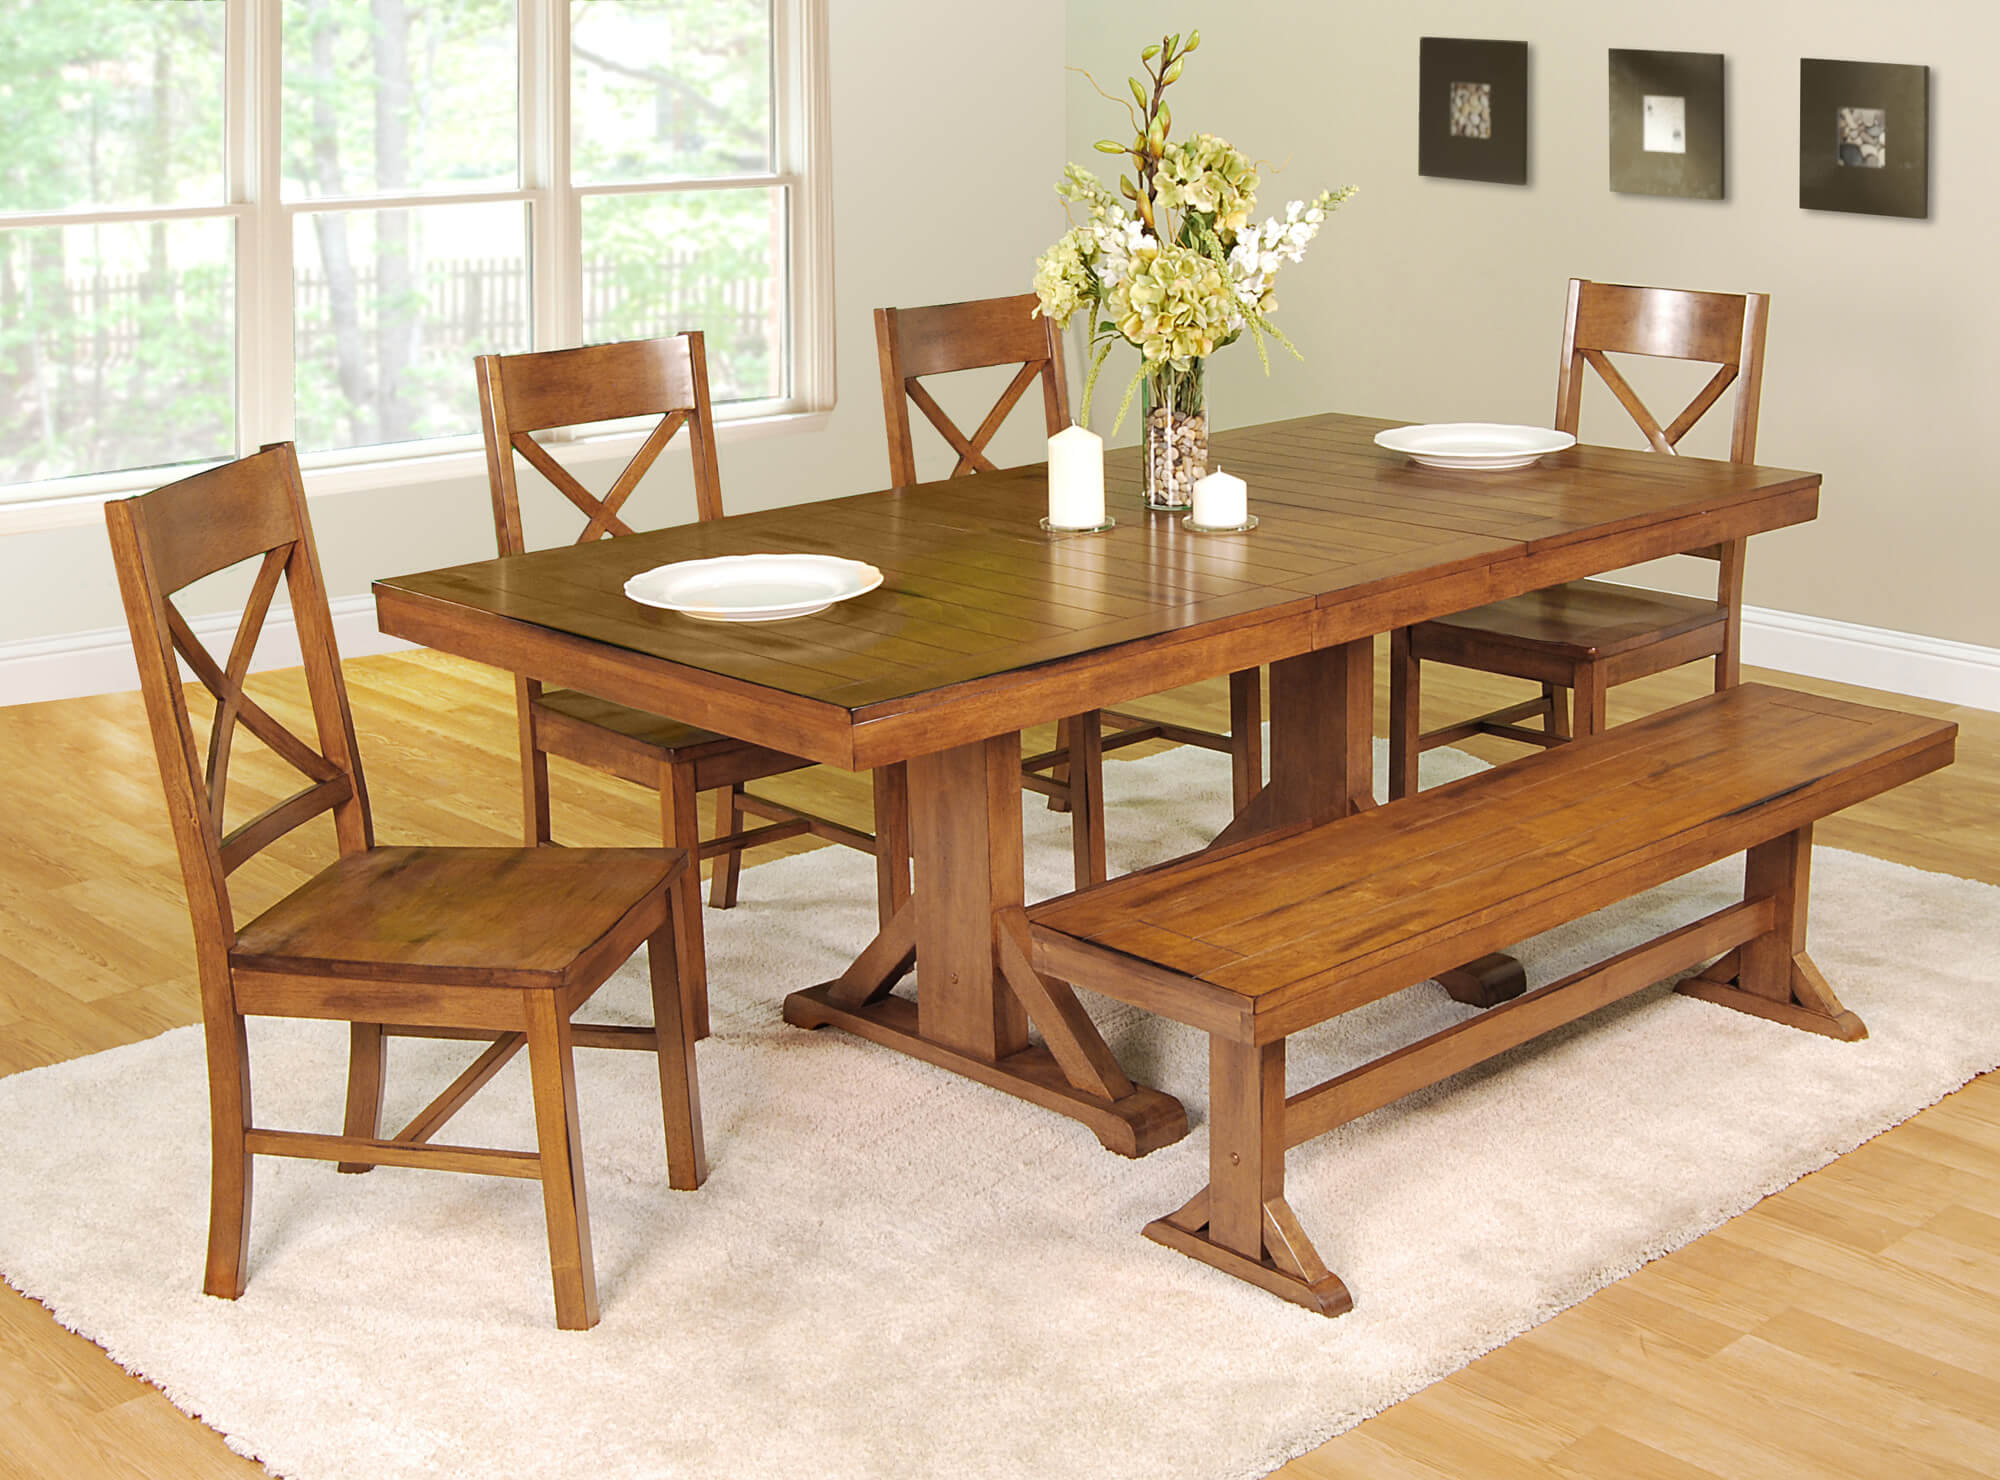 dining room sets bench seating kitchen dining chairs This dining room set with bench is going for the antique look with an antique brown